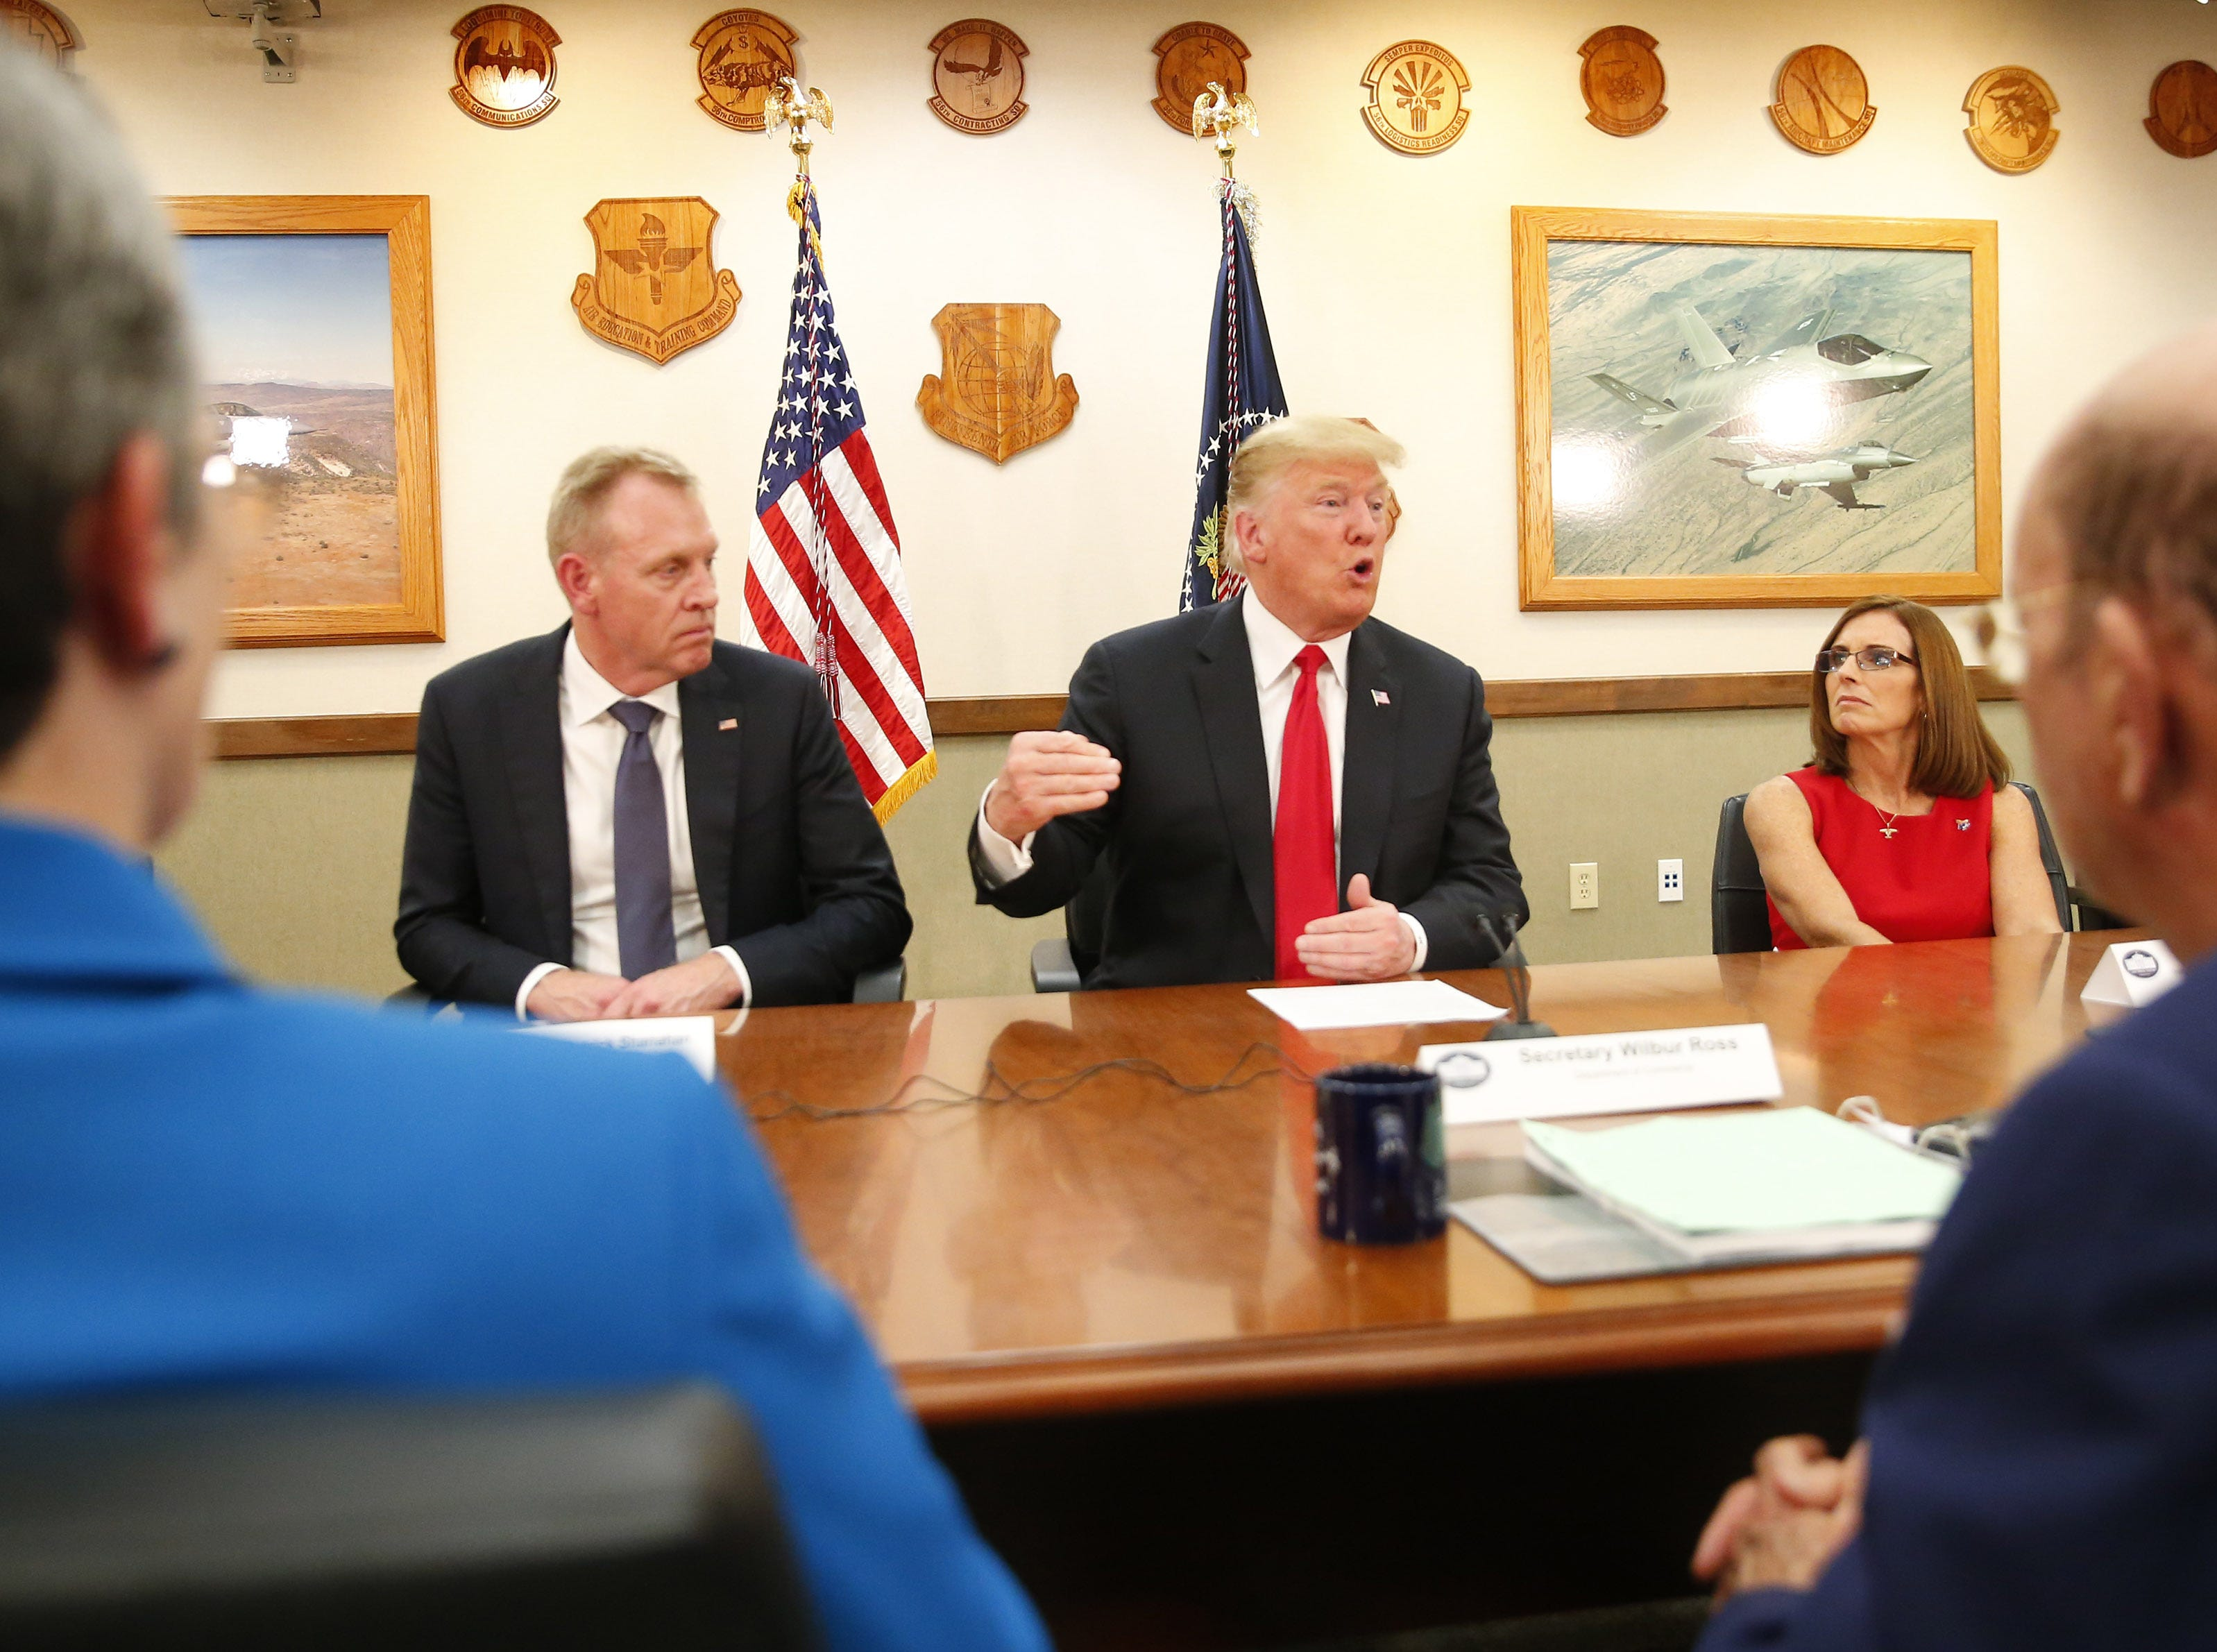 President Donald Trump leads a roundtable discussion during a round-table discussion at Luke Air Force Base in Glendale on Oct. 19, 2018.